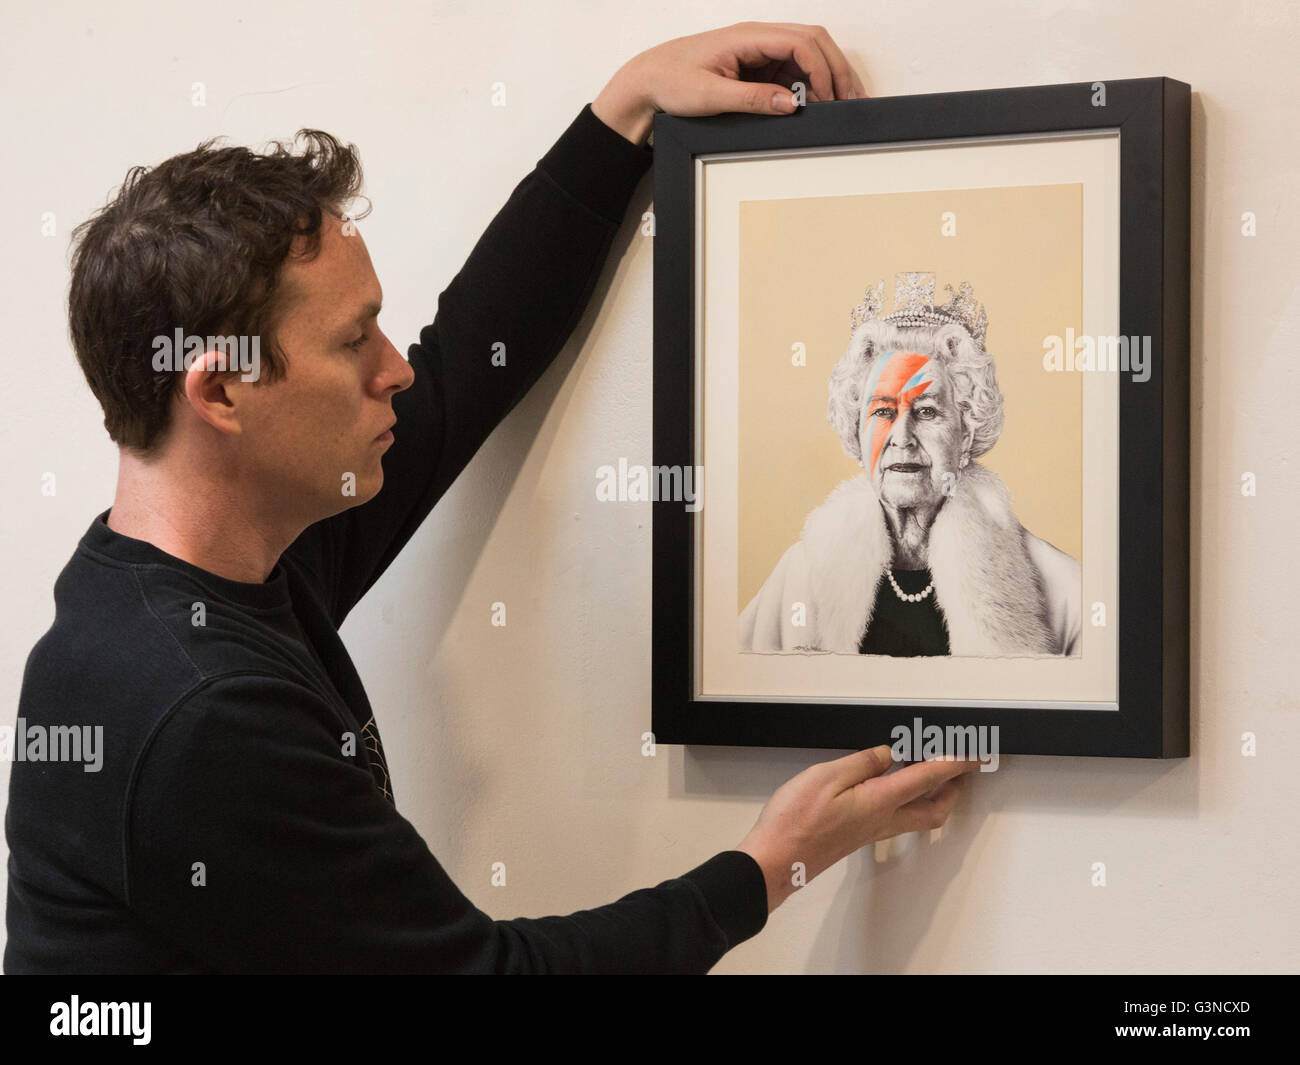 London, UK. 13 June 2016. Artist James Mylne with his portrait 'Eyes Wide Shut', 2016. Art Below presents - Stock Image